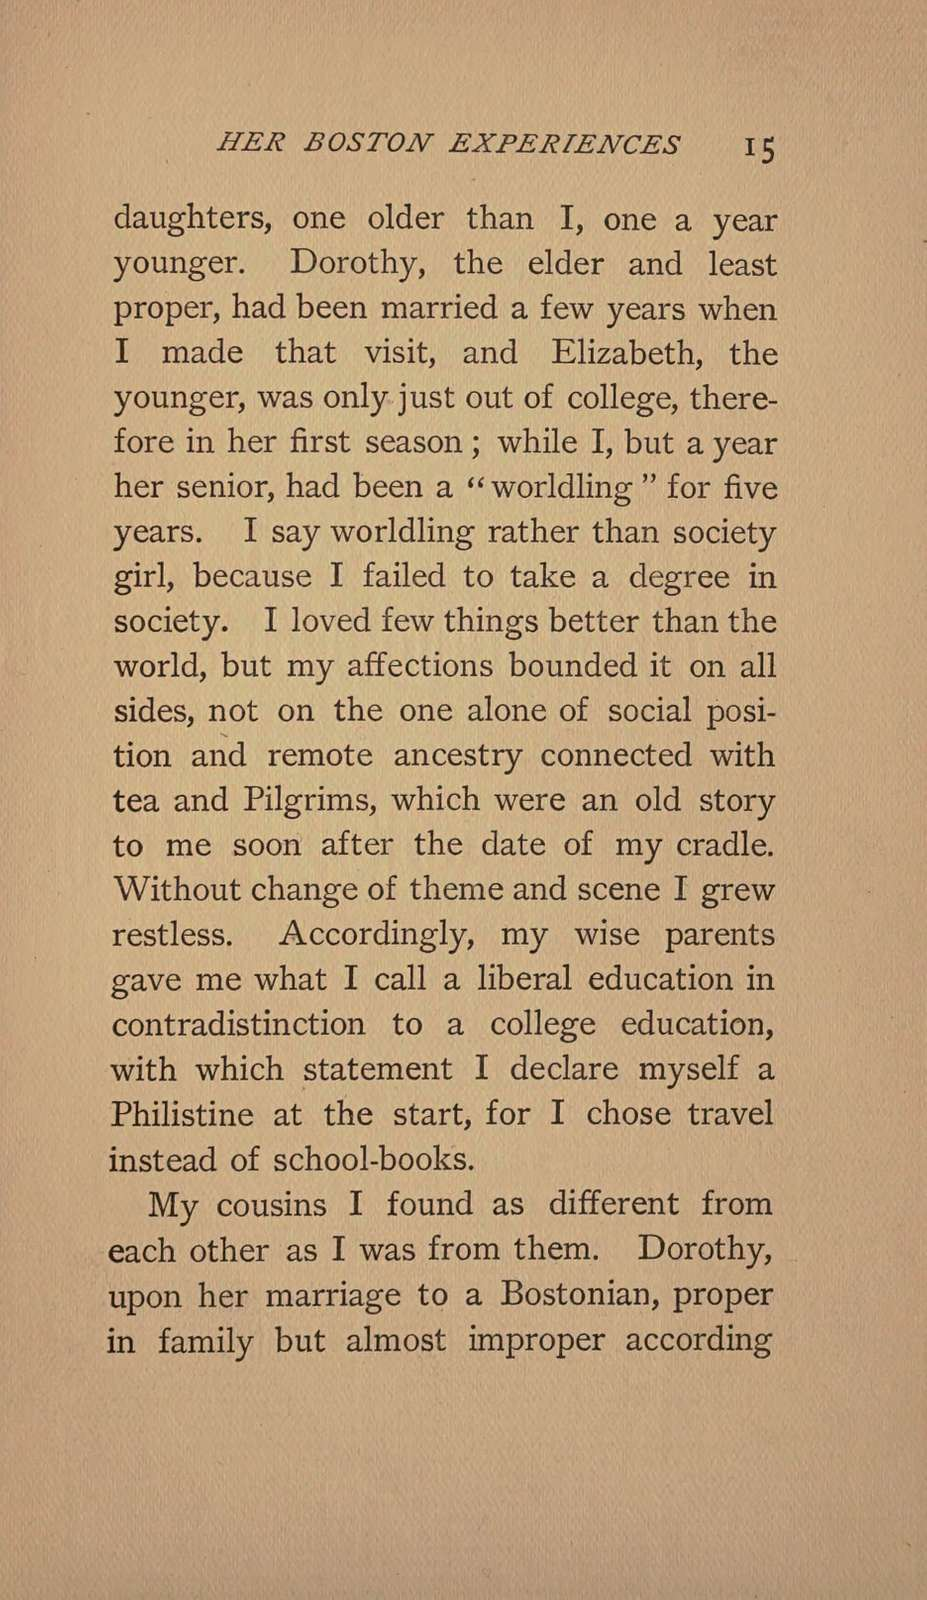 Her Boston experiences; a picture of modern Boston society and people,